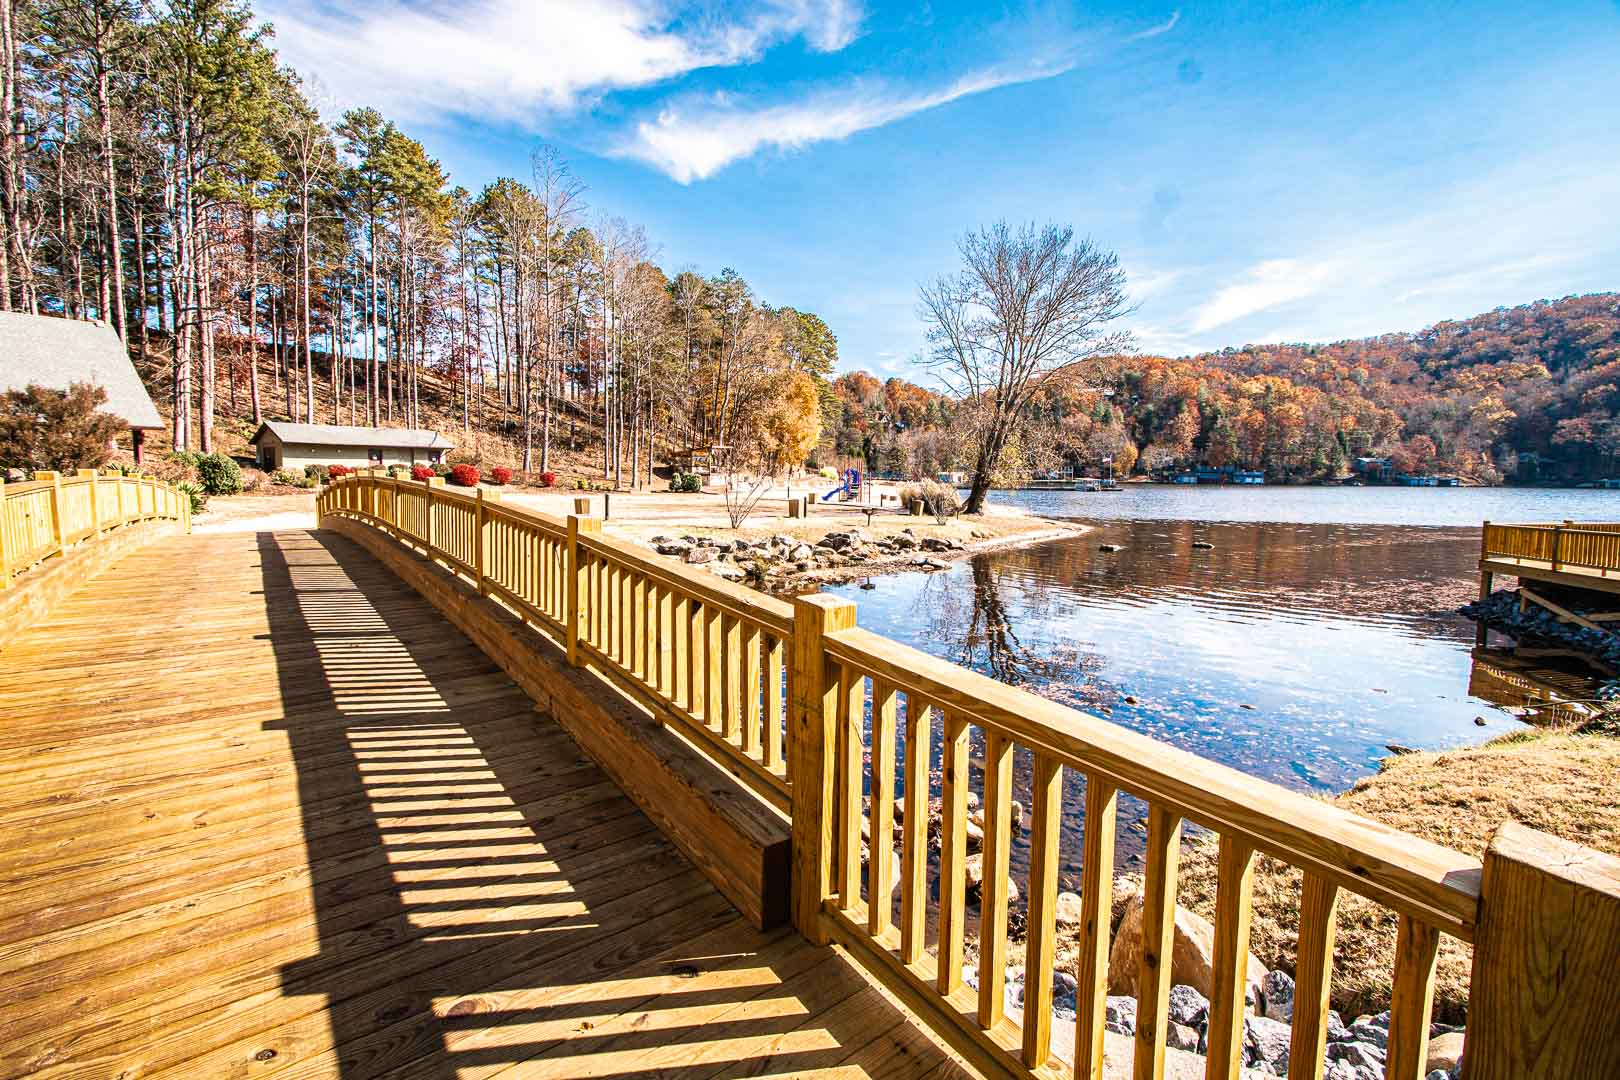 A relaxing view at VRI's Mountain Loft Resort in North Carolina.